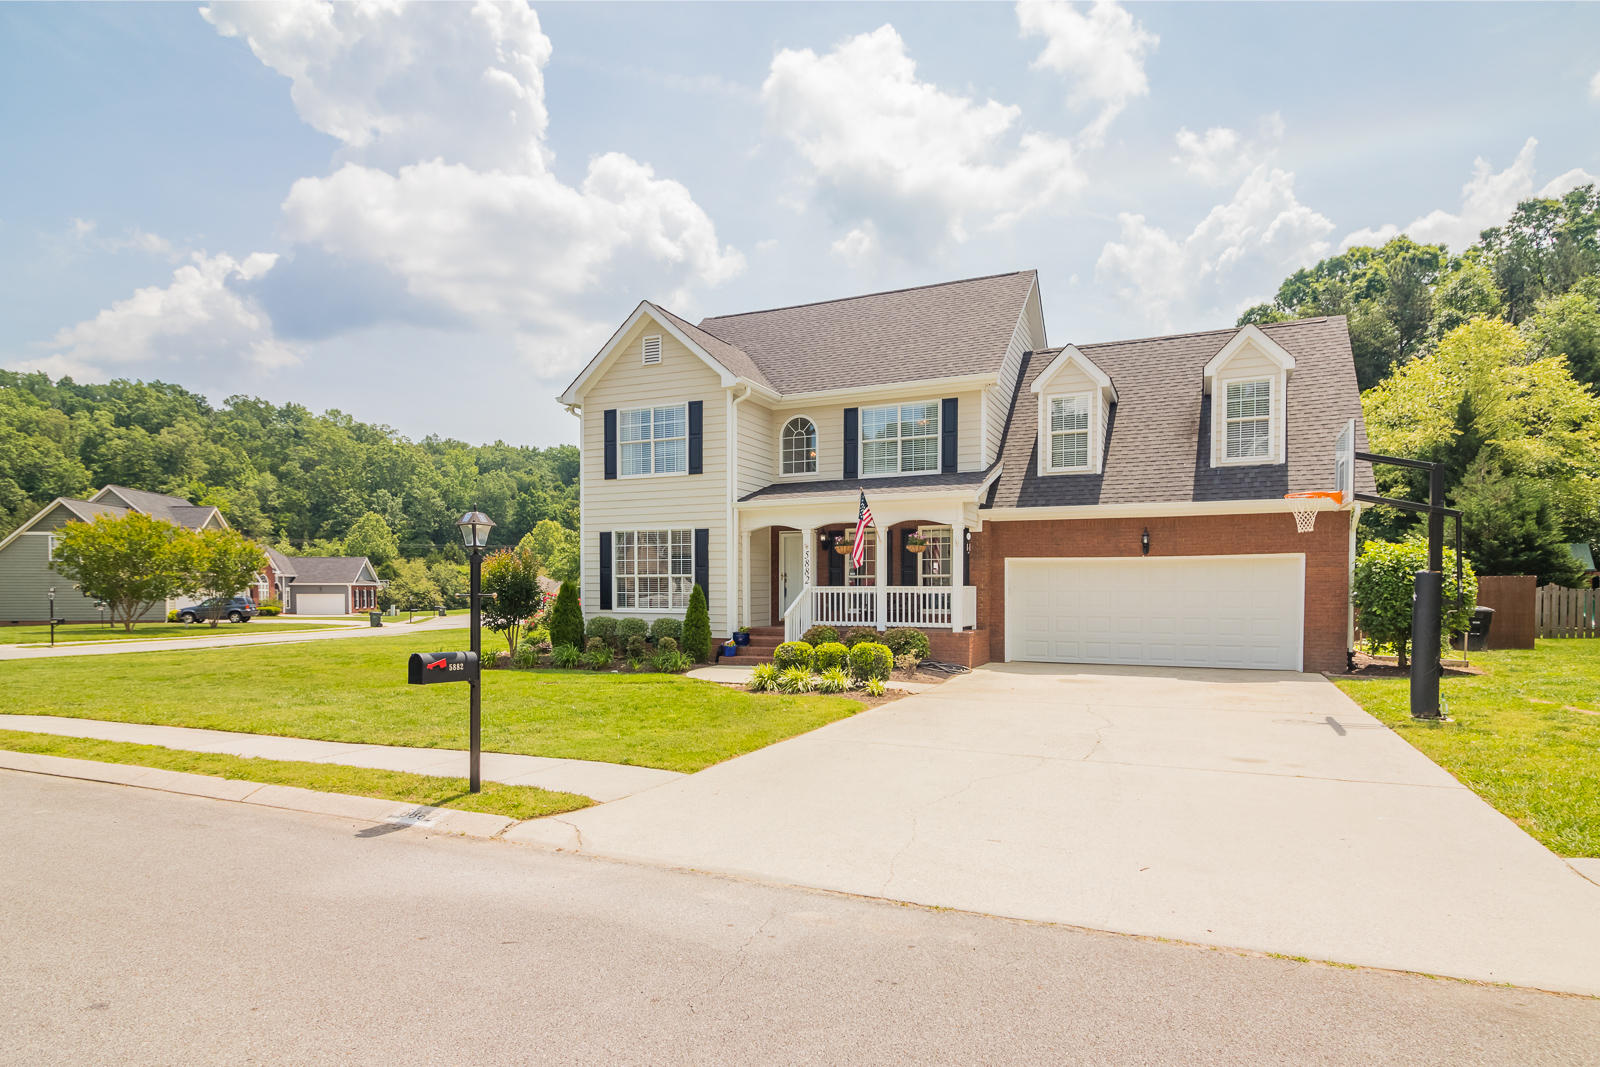 5882 Crooked Creek Dr, Ooltewah, Tennessee